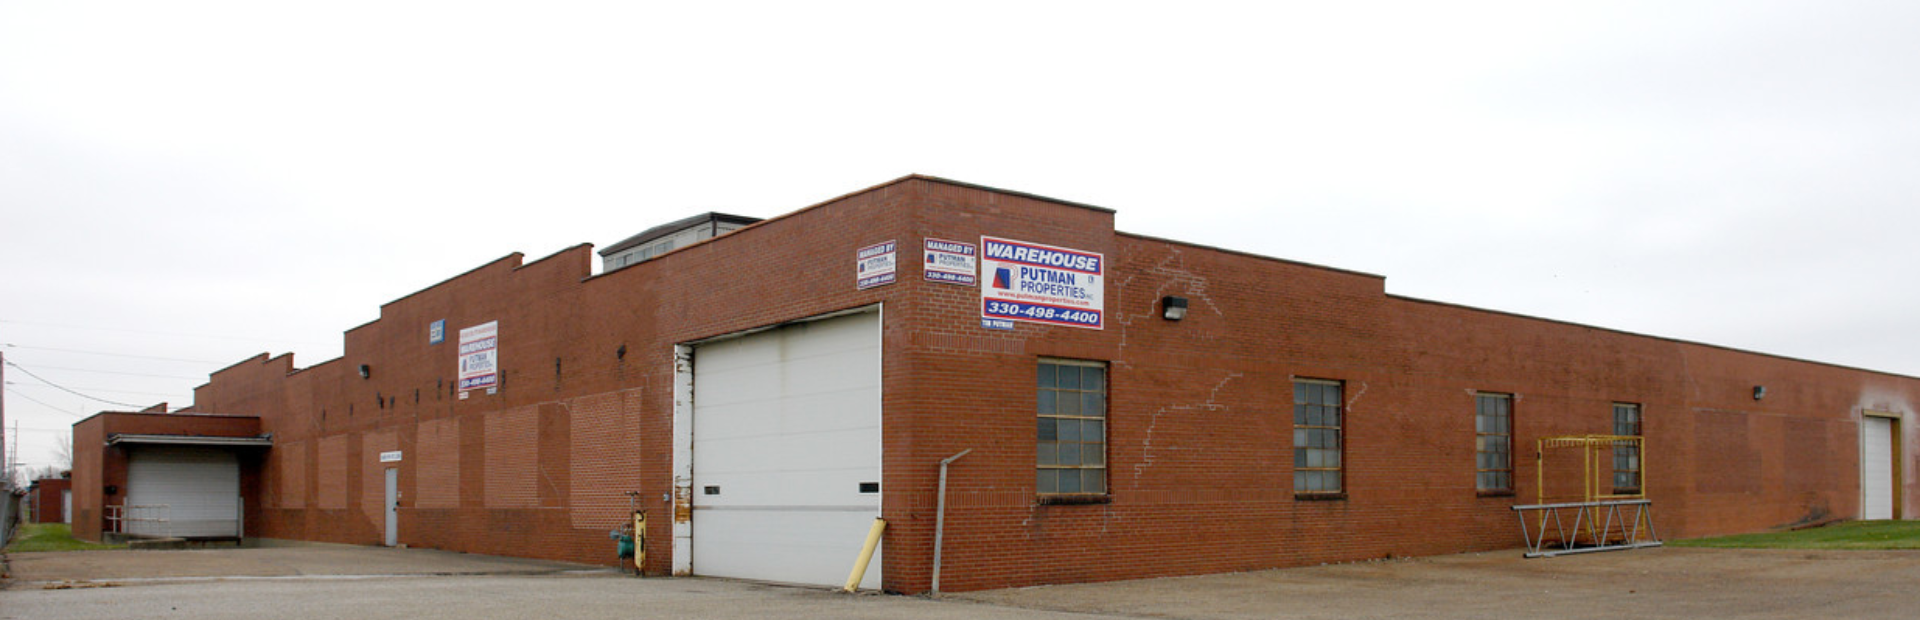 22,350 SQ. FT. OF INDUSTRIAL SPACE